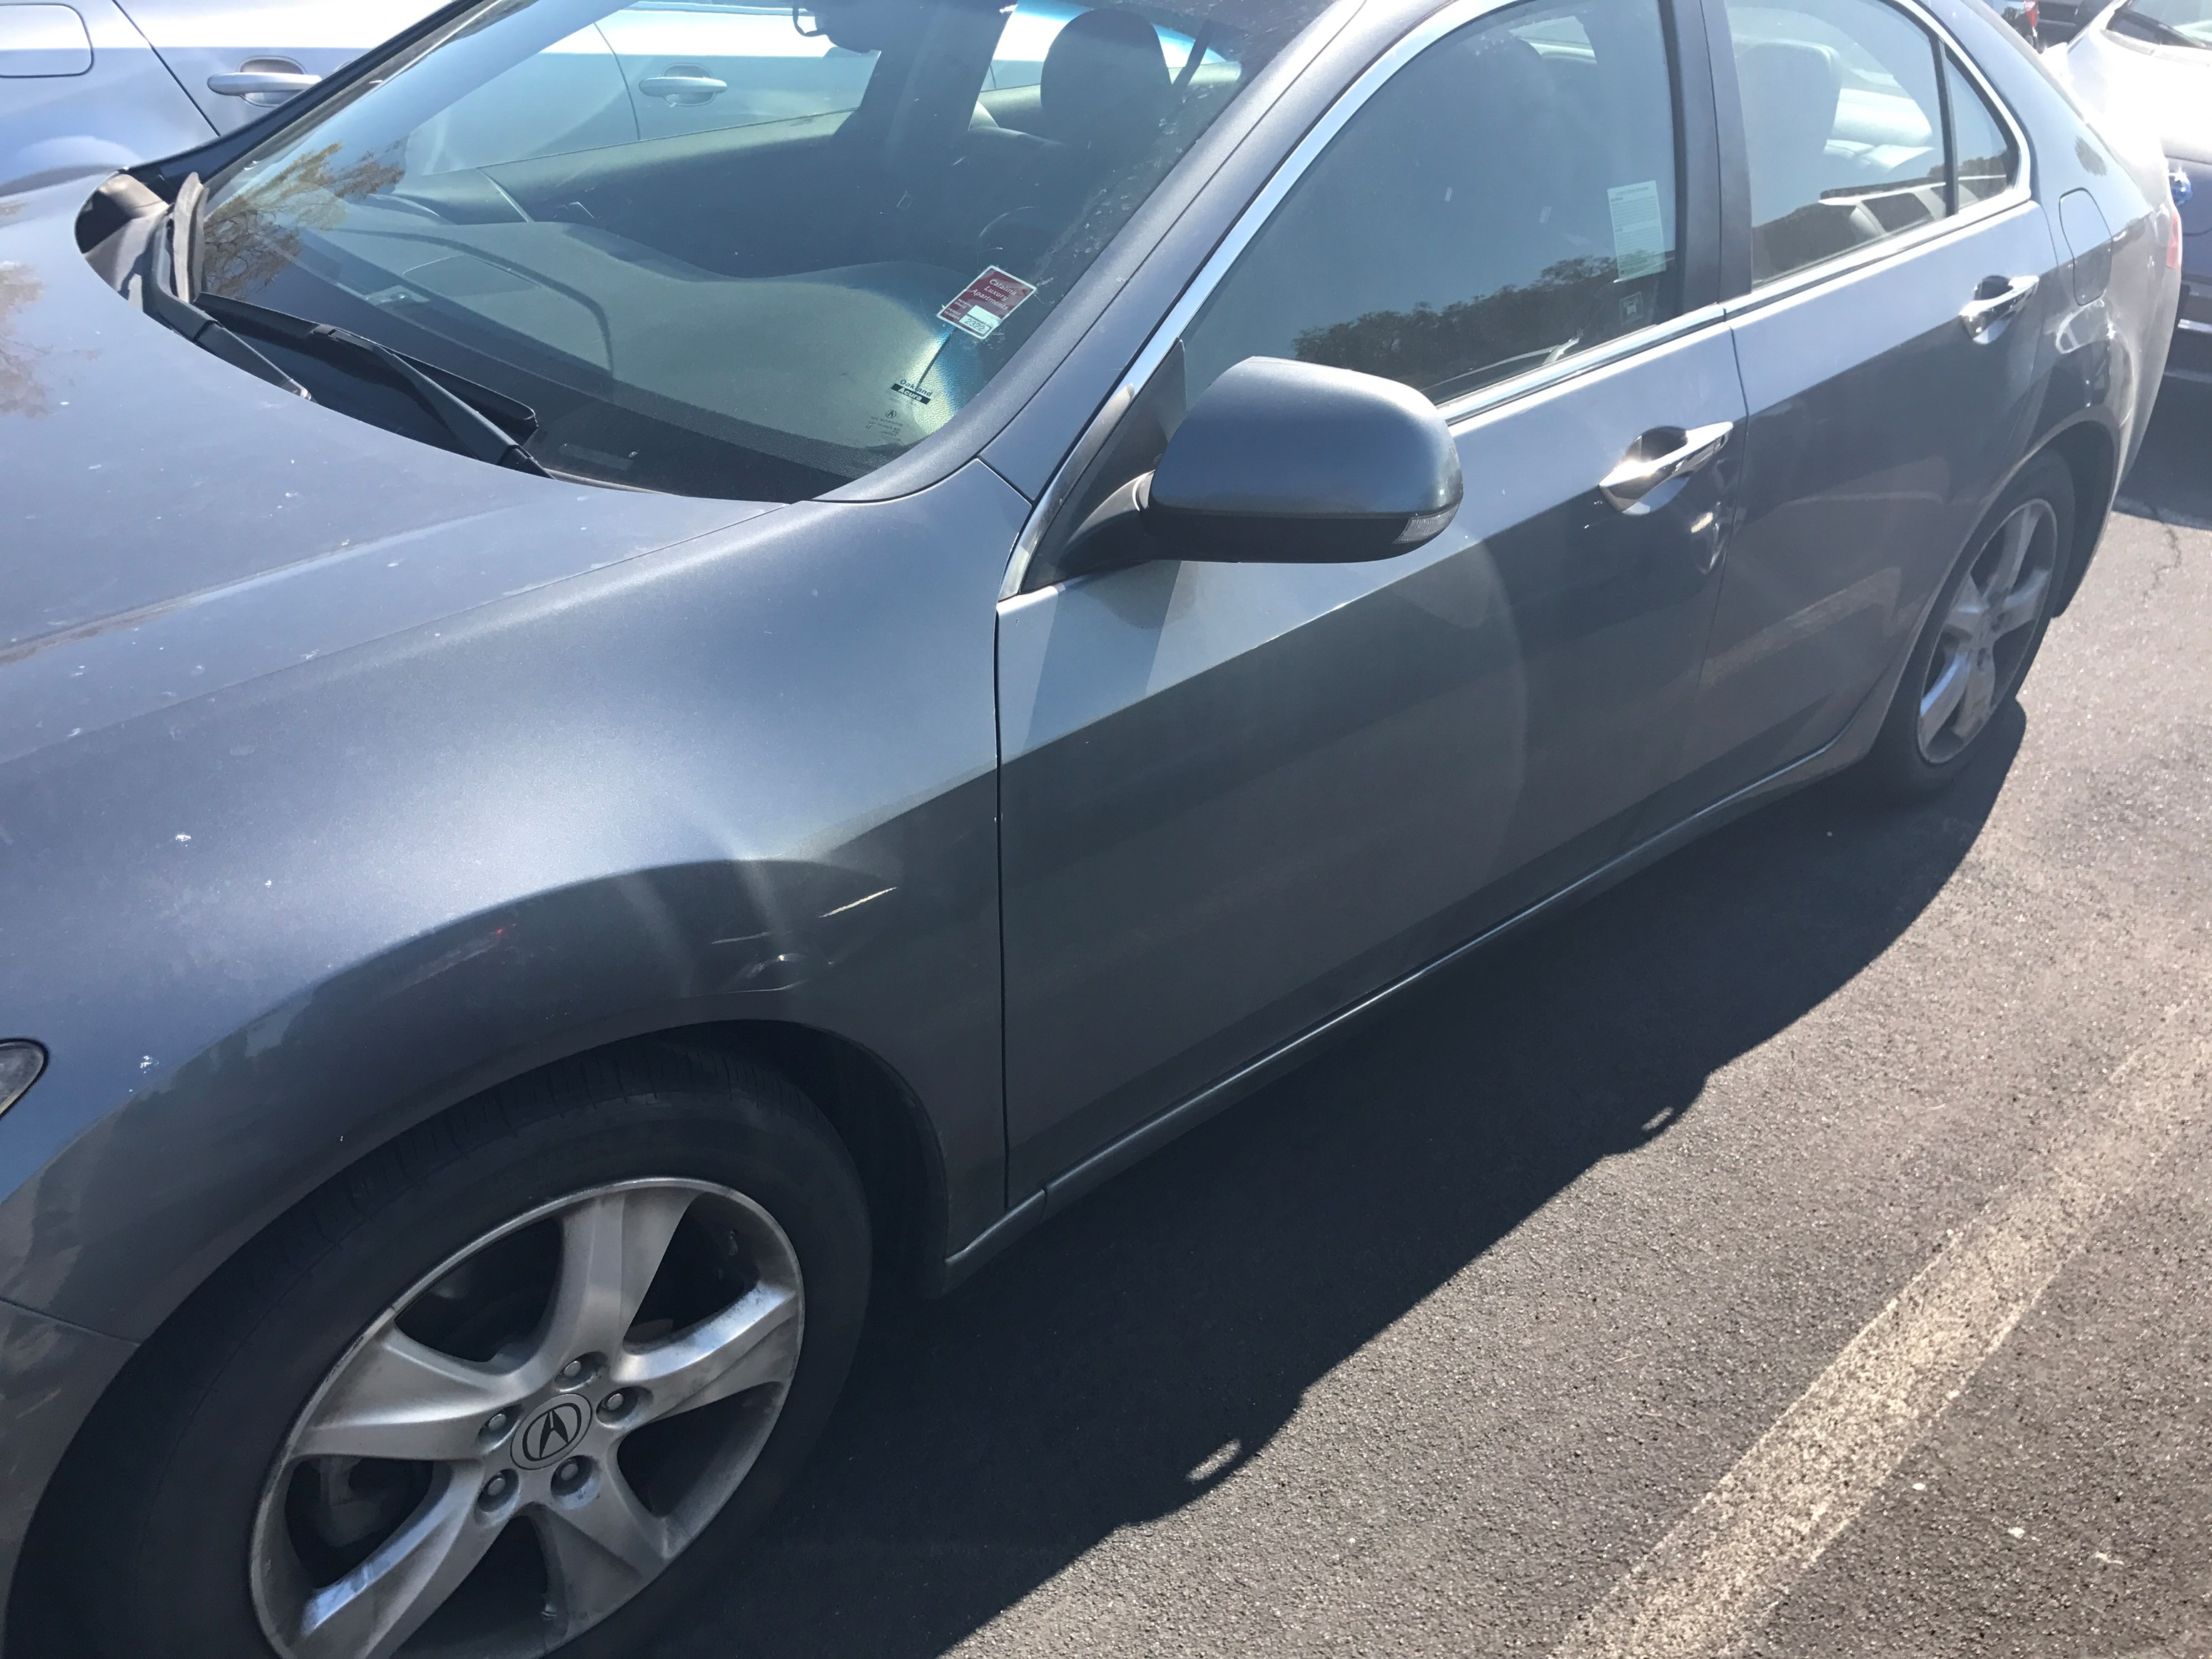 sale acura w loc fs stock nj for member tech img k cars manual tsx obo forums hills speed package short